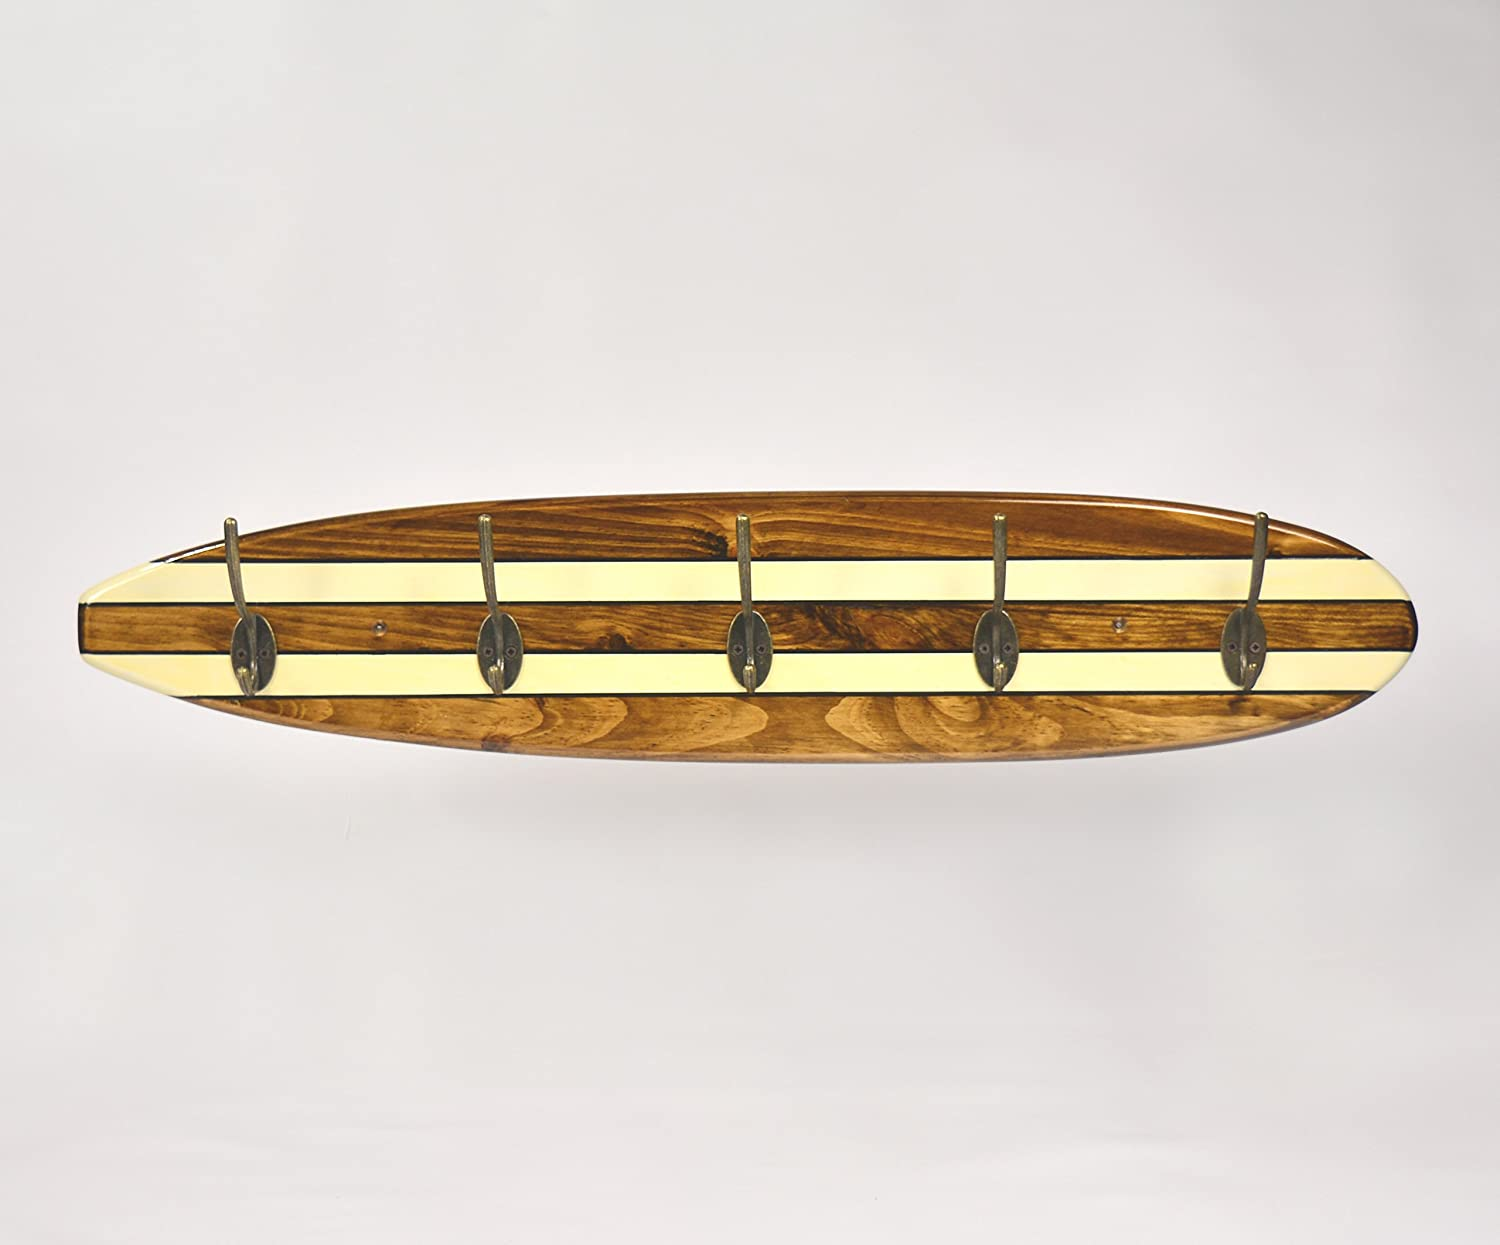 05 Art Deco. Perchero Tabla Longboard Retro Brillo: Amazon ...